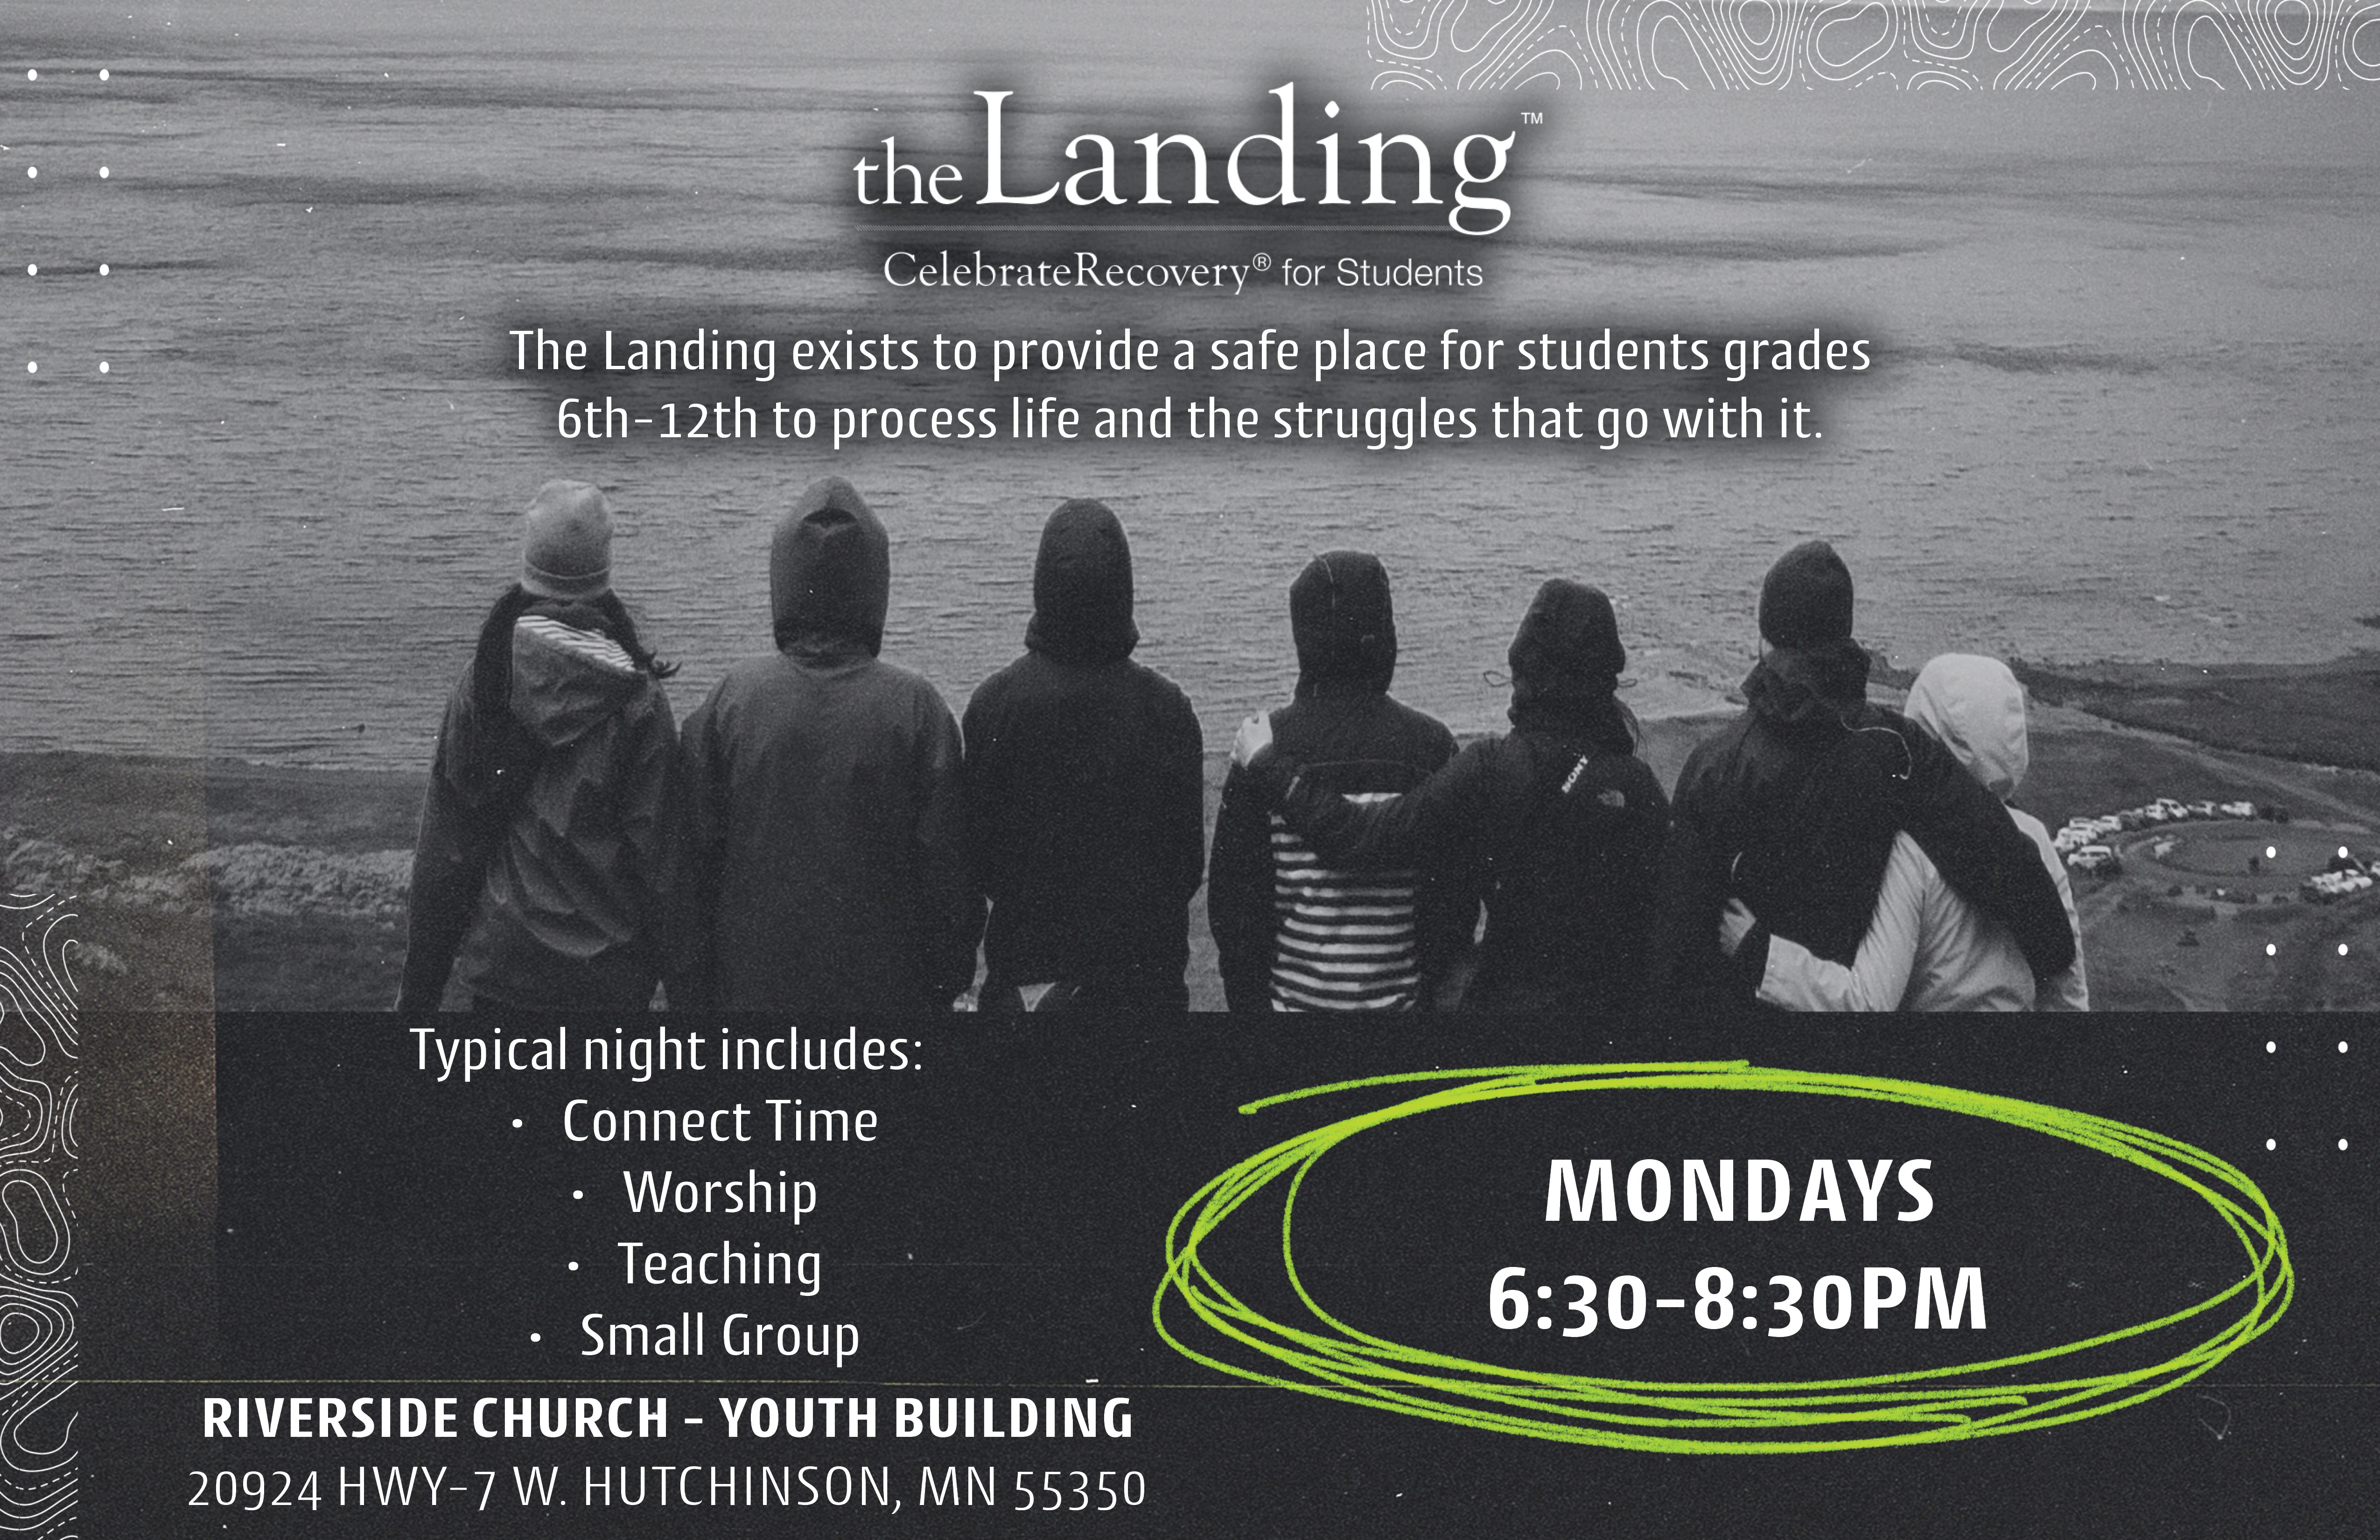 the Landing Poster image